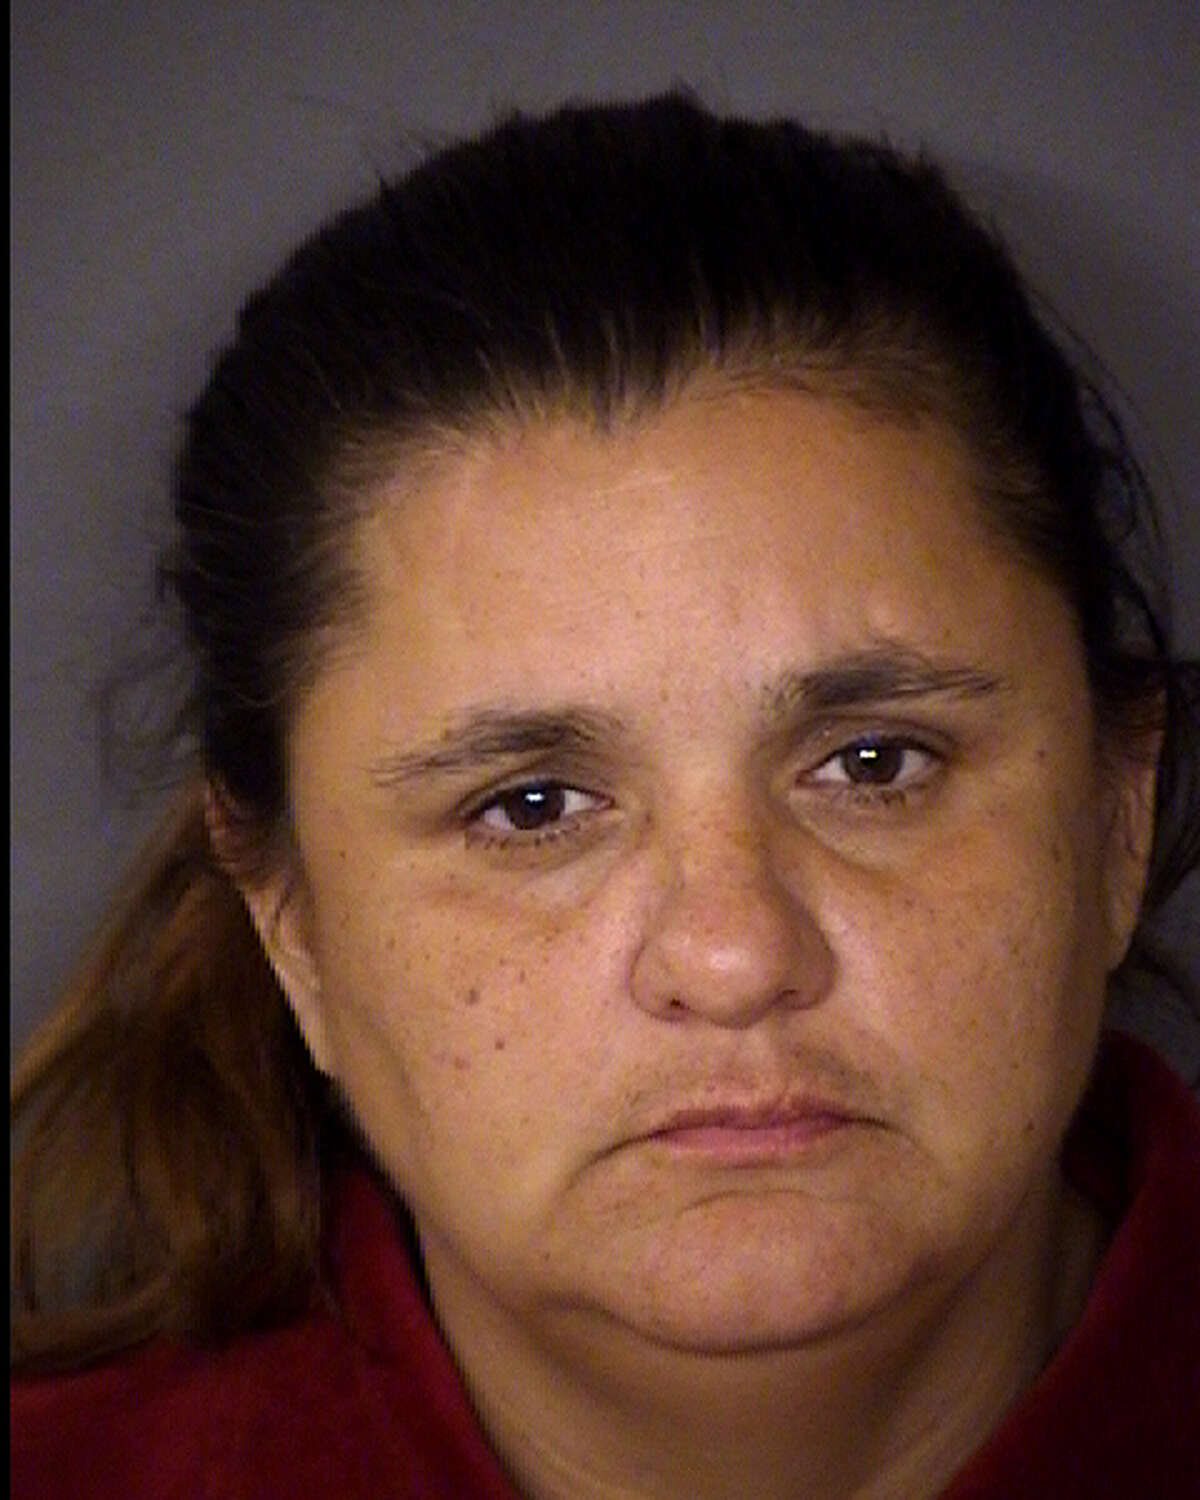 Maria Theresa Montoya, 46, can be seen here in a booking photo for prostitution on July 10, 2014.